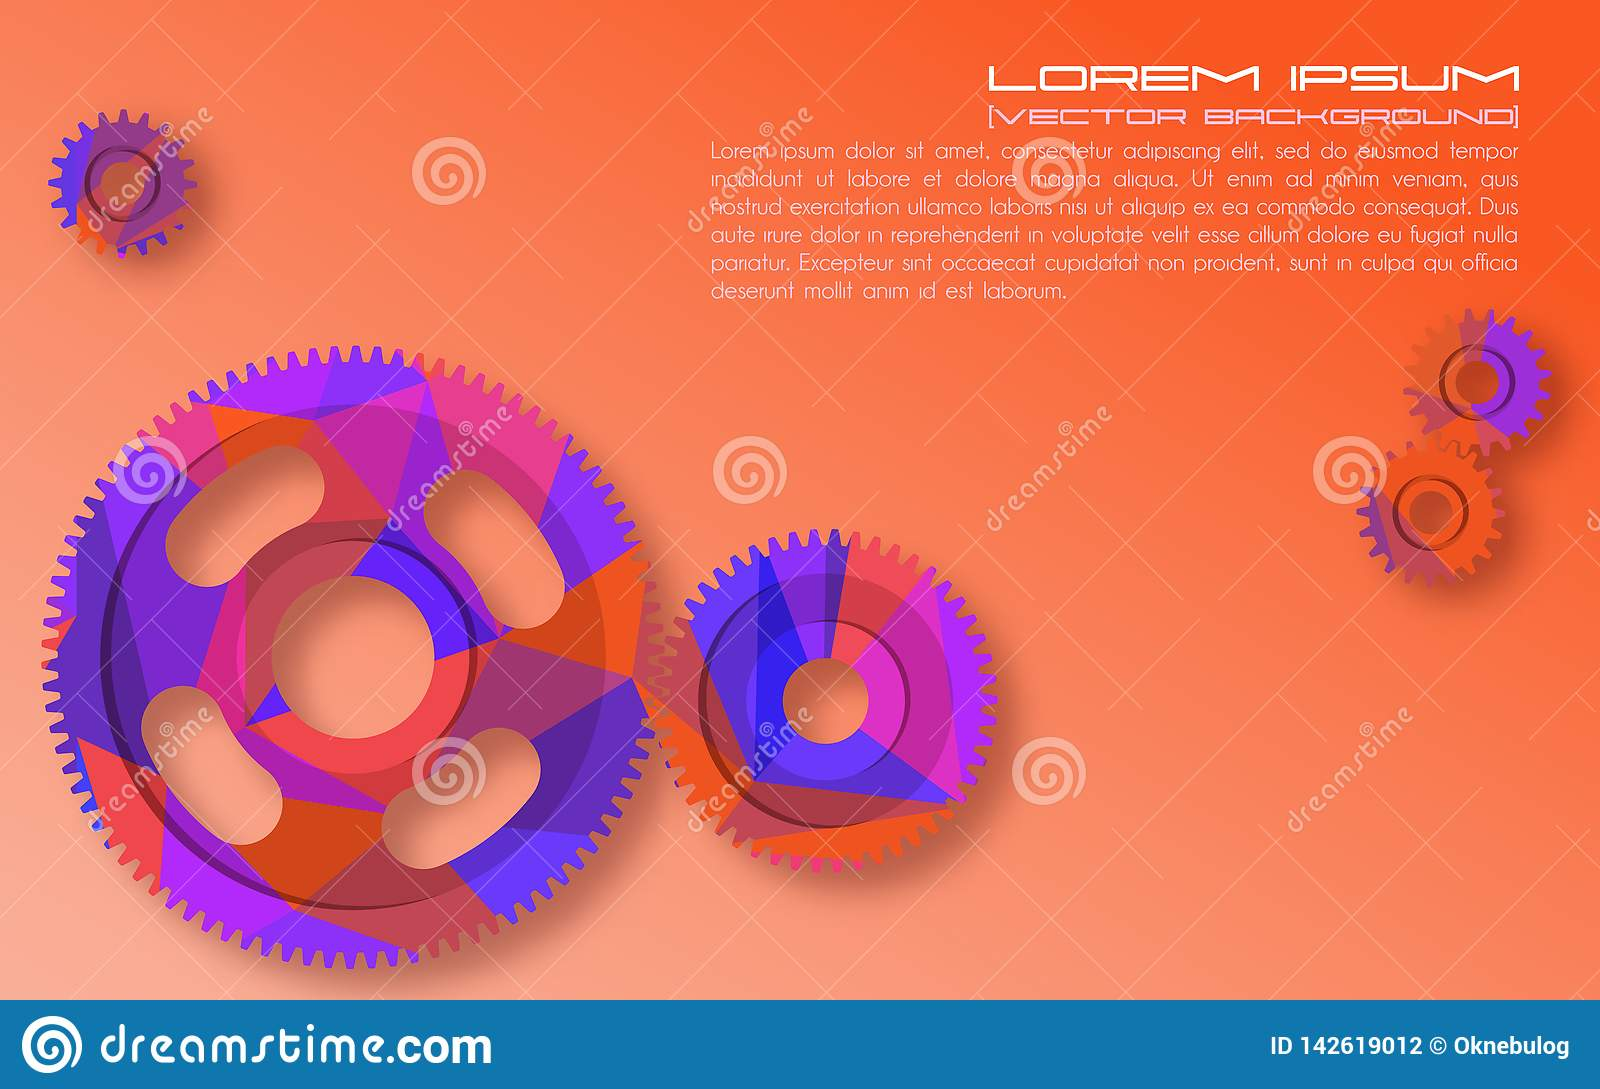 Gears  Abstract Background For Technical Webpage  Vector Illustration Stock Vector